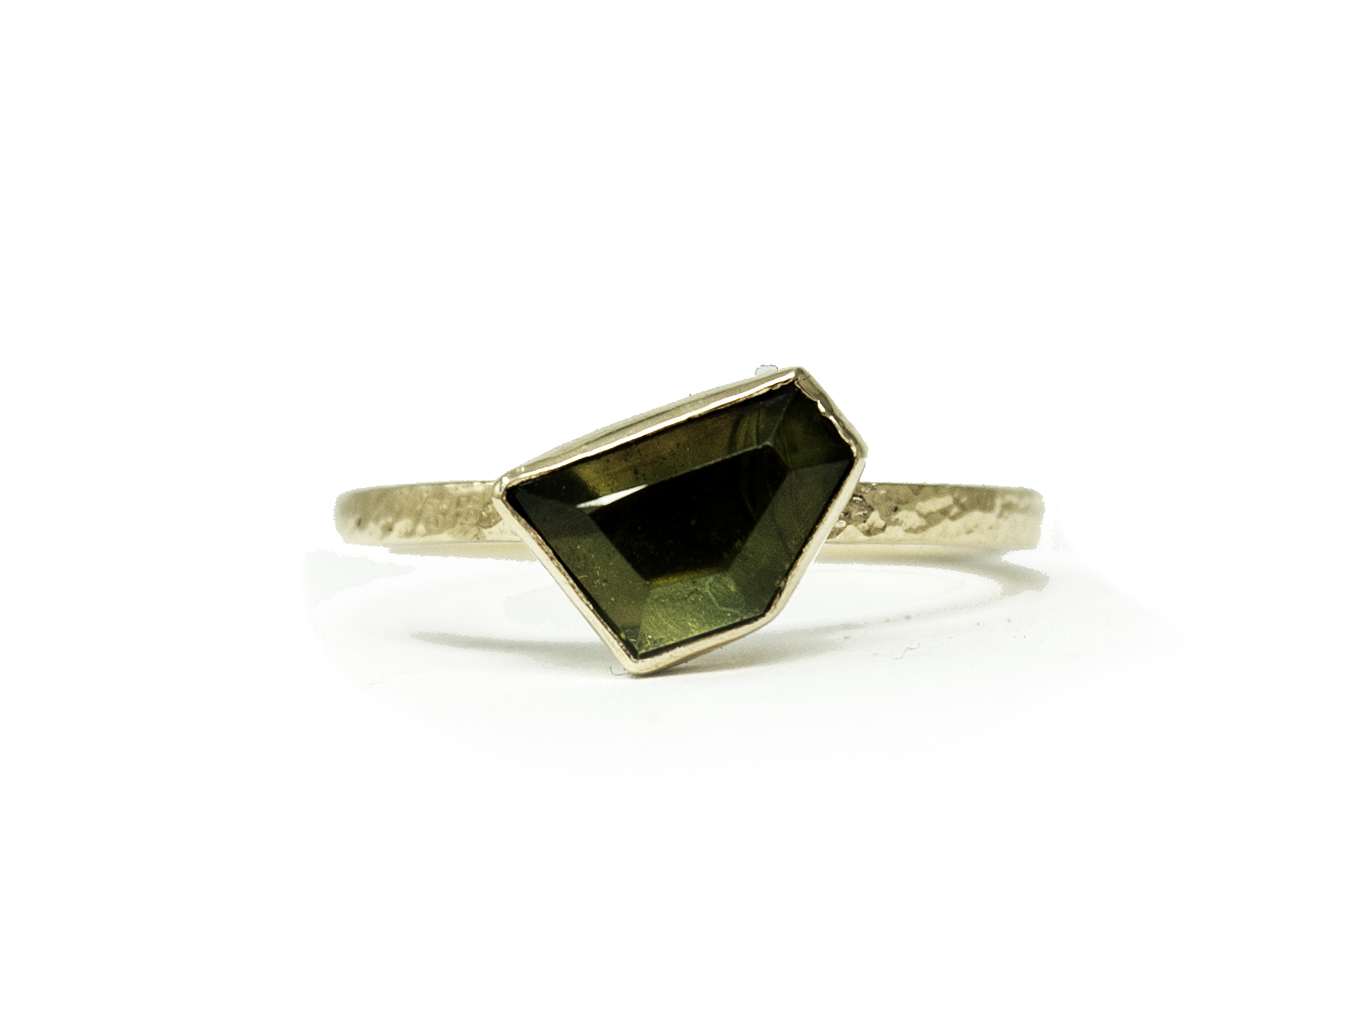 A gift to herself just because- Tiffany picked our favorite geometric cut sapphire for this yellow gold beauty.